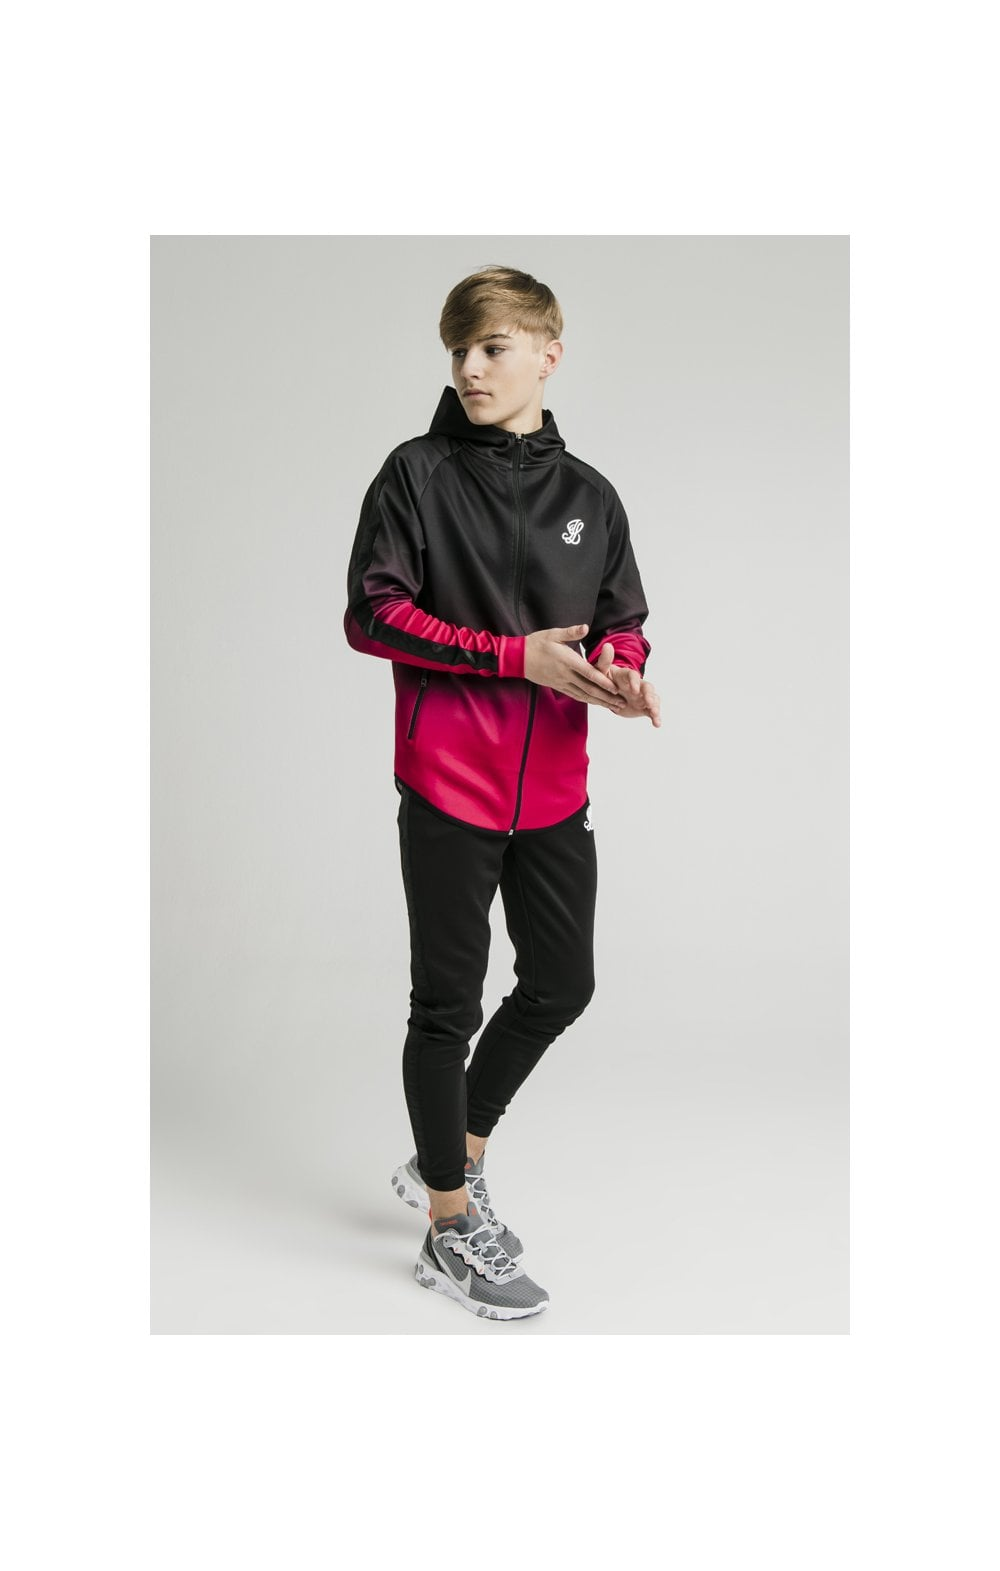 Load image into Gallery viewer, Illusive London Athlete Zip Through Fade Hoodie - Black & Pink (4)